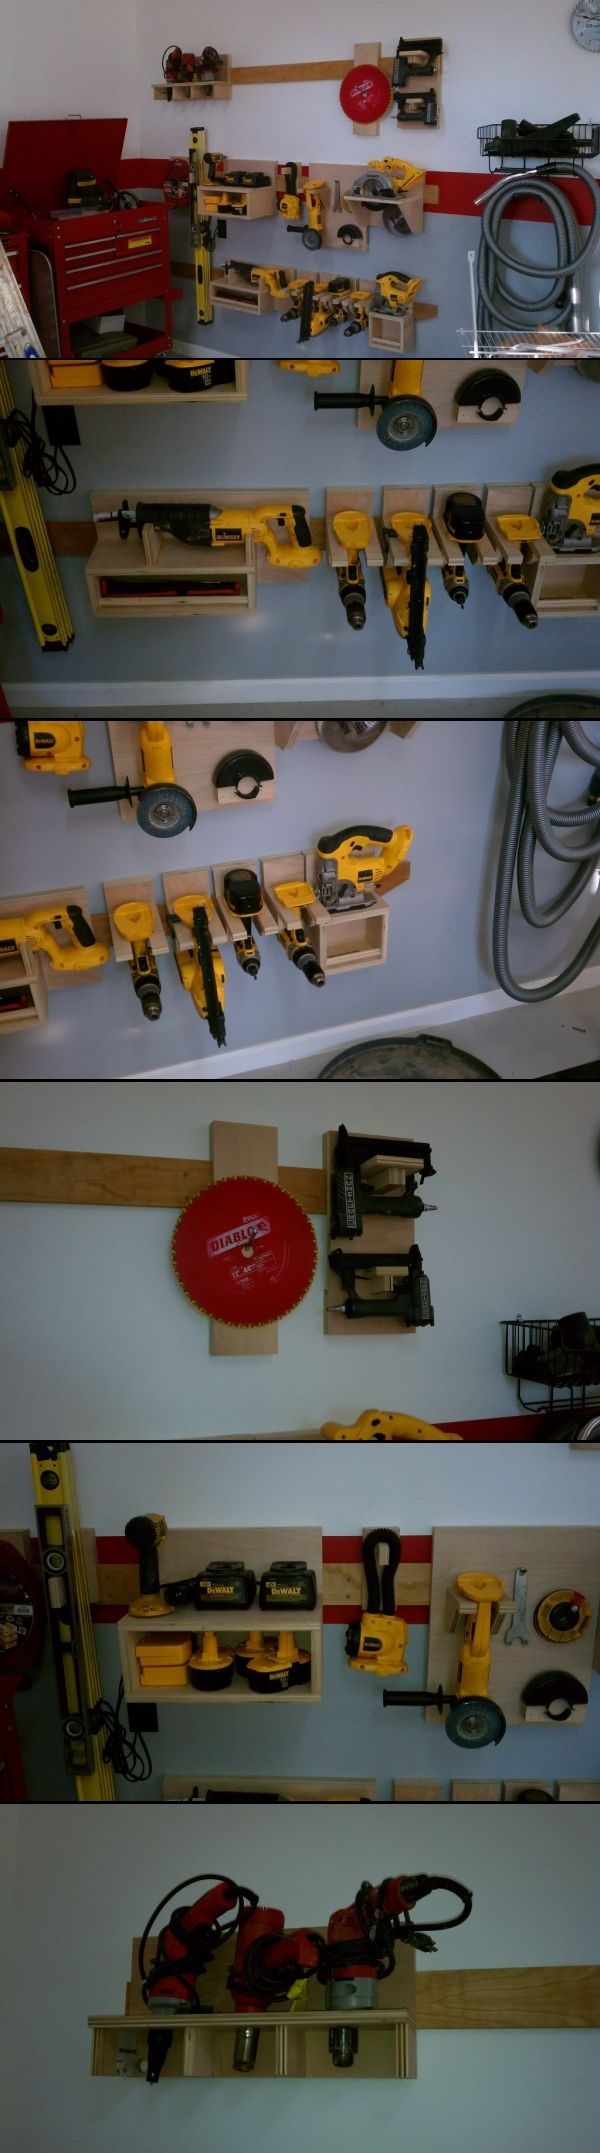 French Cleat Storage - DeWalt handtools and others.  From: http://www.garagejournal.com/forum/showthread.php?t=121476 - created via http://pinthemall.net